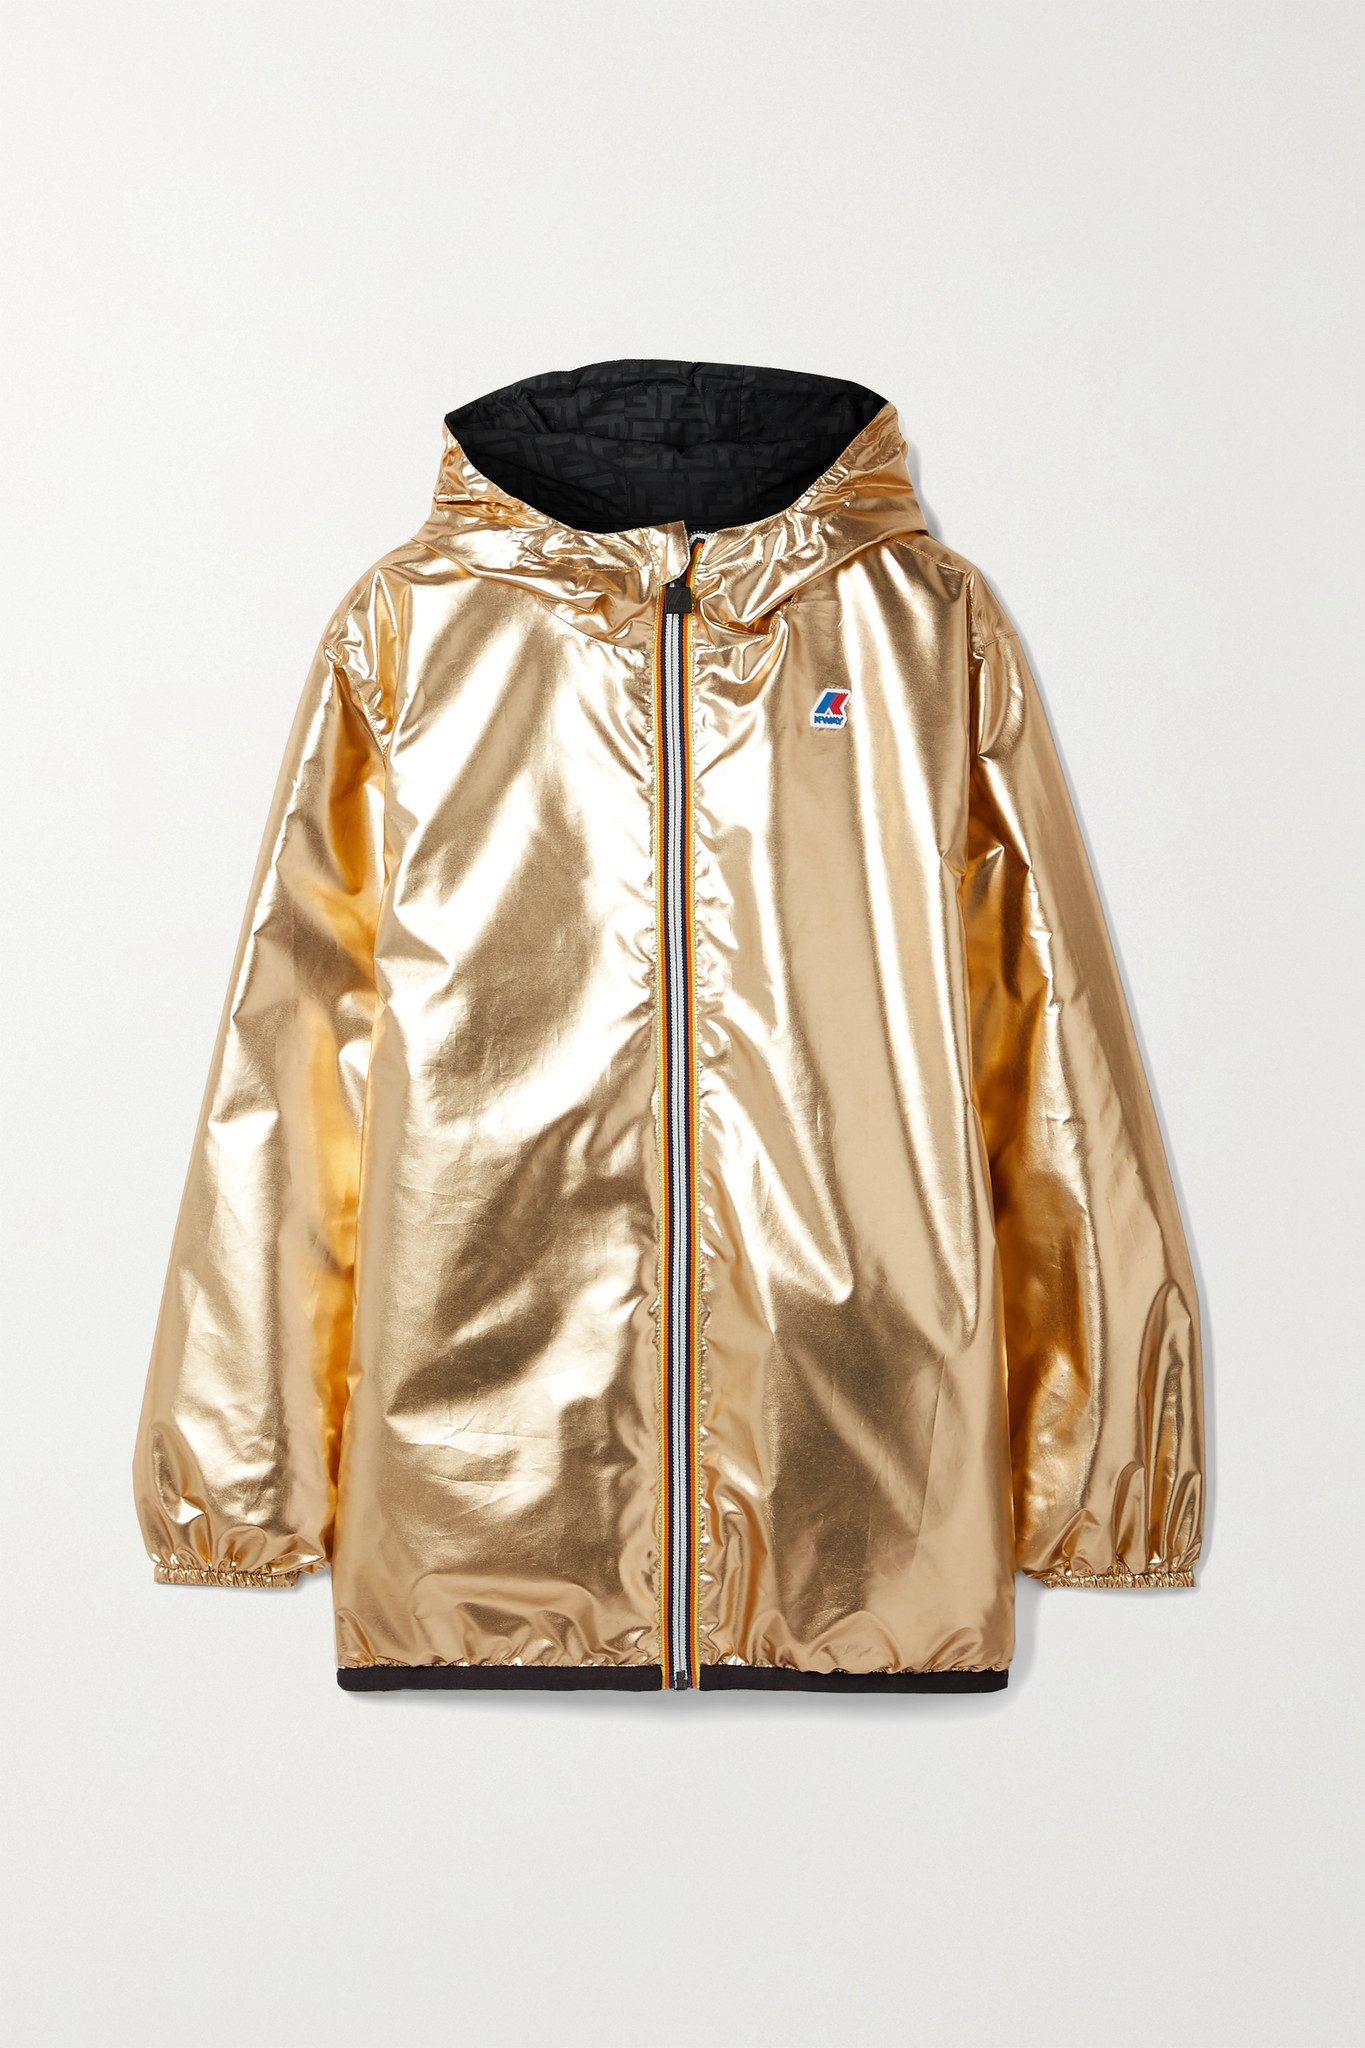 FENDI - + K-way Reversible Hooded Appliquéd Printed Shell Jacket - Gold - large